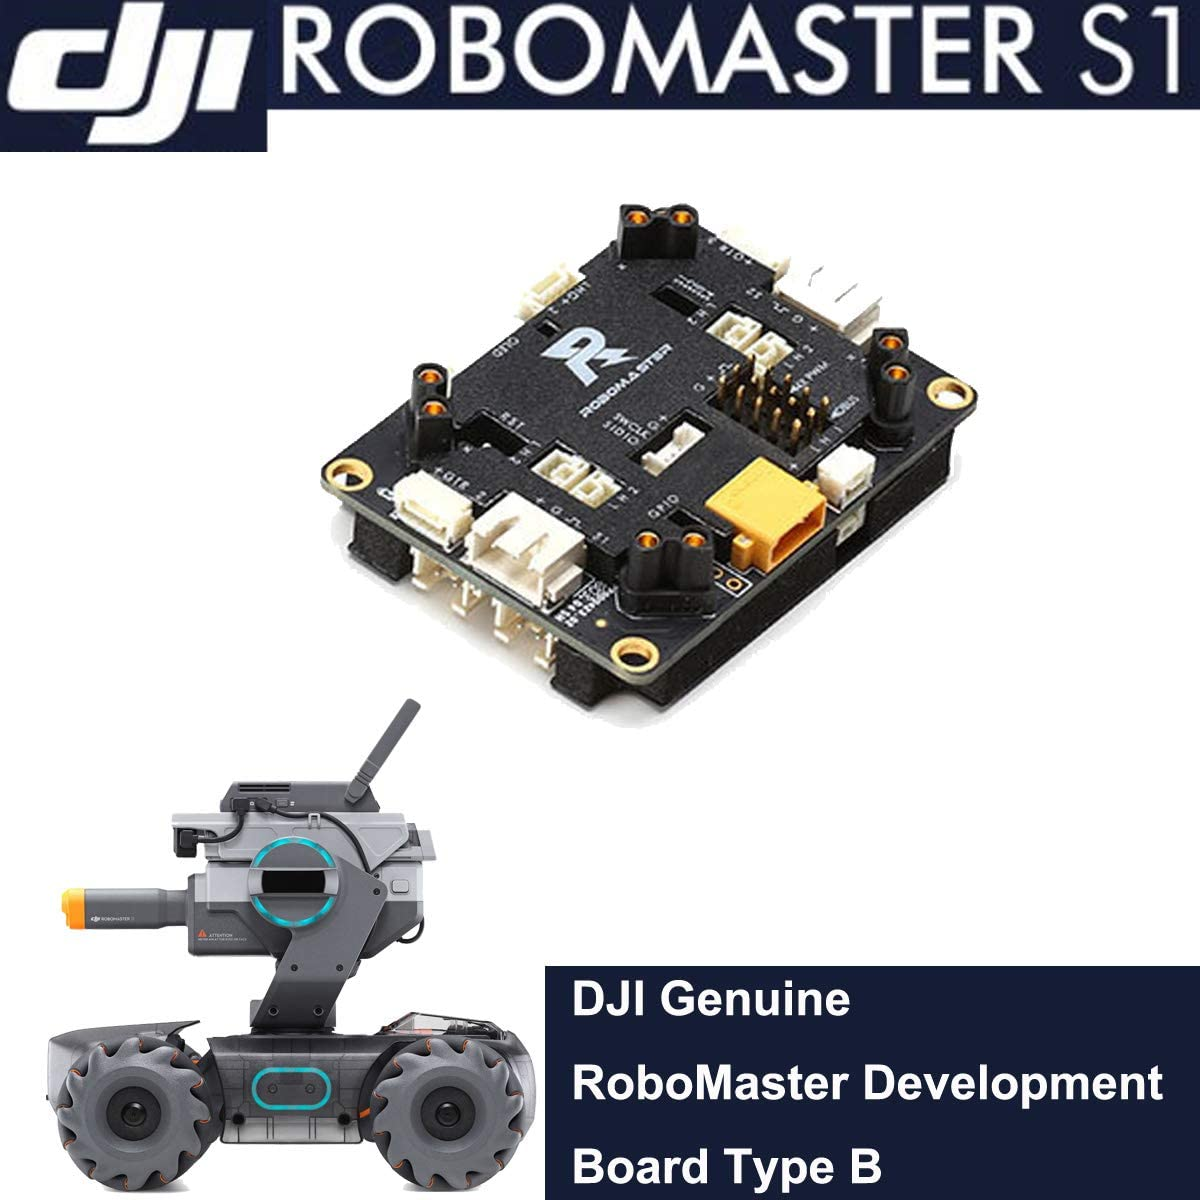 DJI Genuine M3508 P19 Brushless DC Gear Motor Huaye RoboMaster S1 Intelligent Educational Robot STEM Repair Parts Supplement Accessories Compatible with DJI Robomaster S1